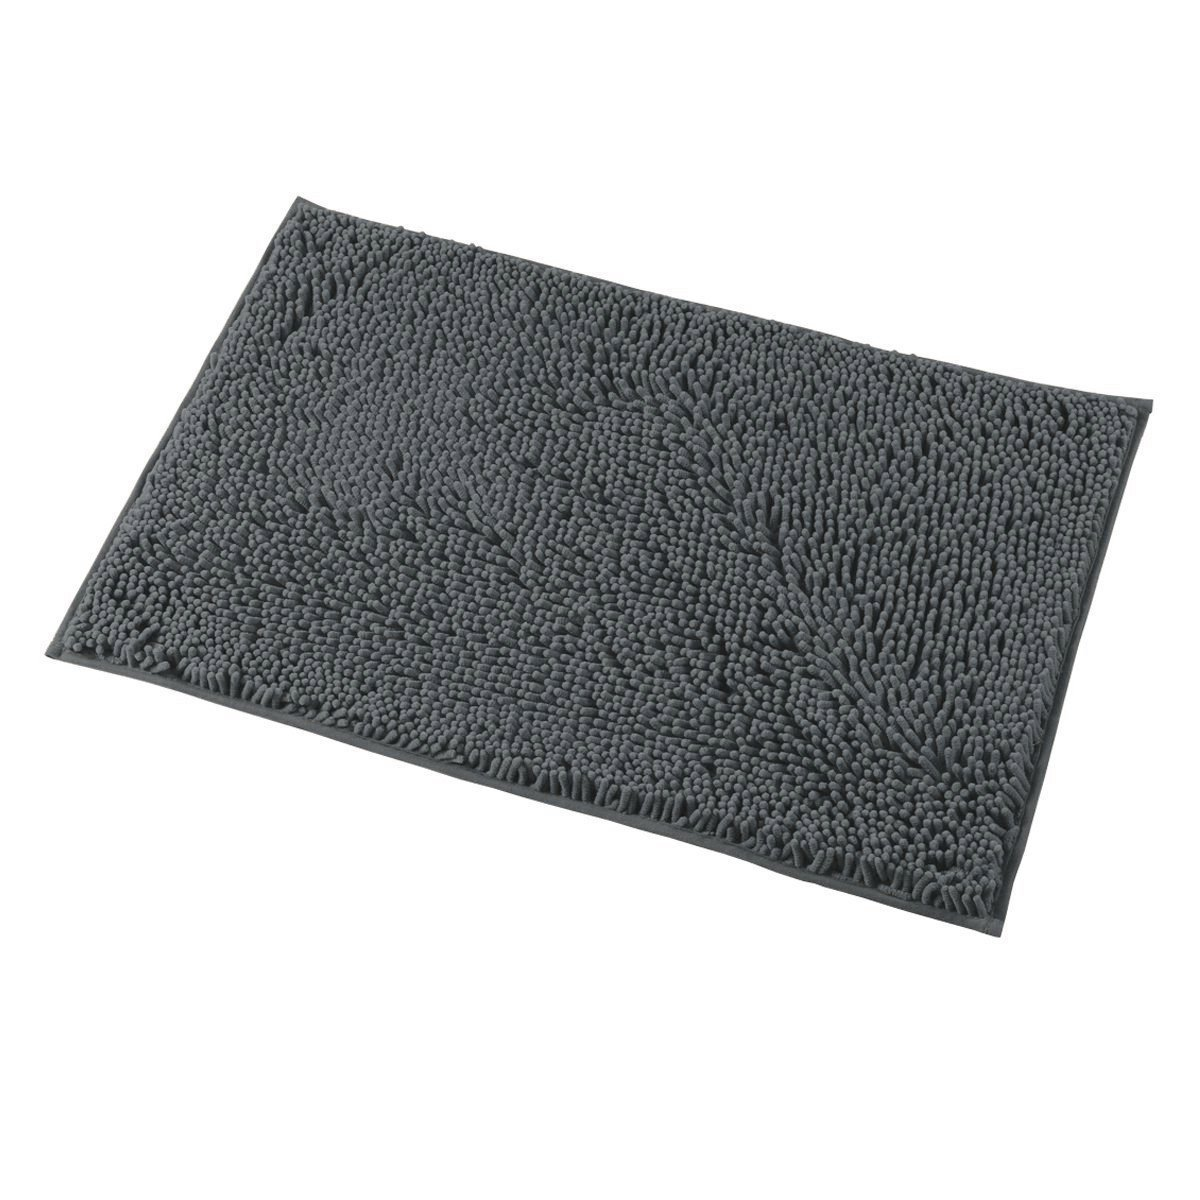 Mayshine Bath mats for Bathroom Rugs Soft, Absorbent, Shaggy Microfiber,Machine-Washable, Perfect for Door Mat (20X32 inch Dark Gray)